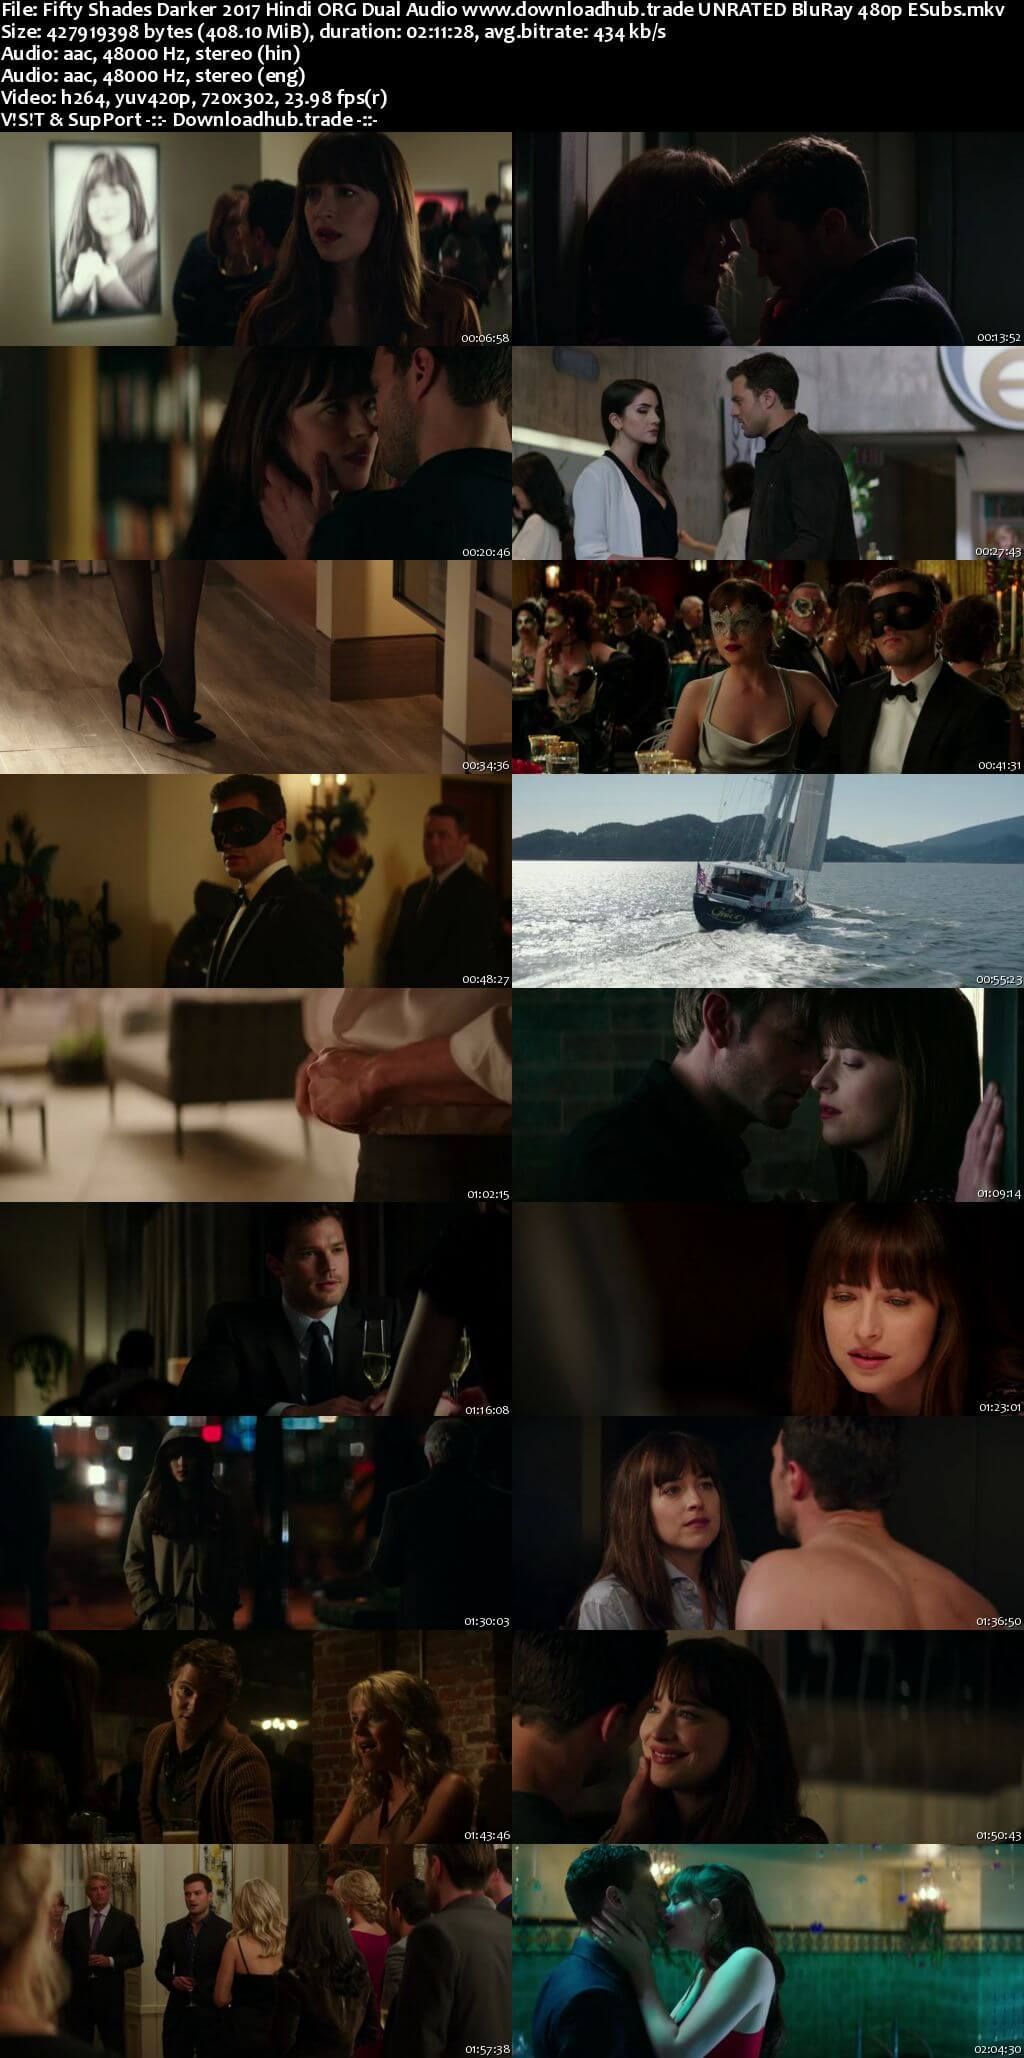 Fifty Shades Darker 2017 Hindi ORG Dual Audio 400MB UNRATED BluRay 480p ESubs